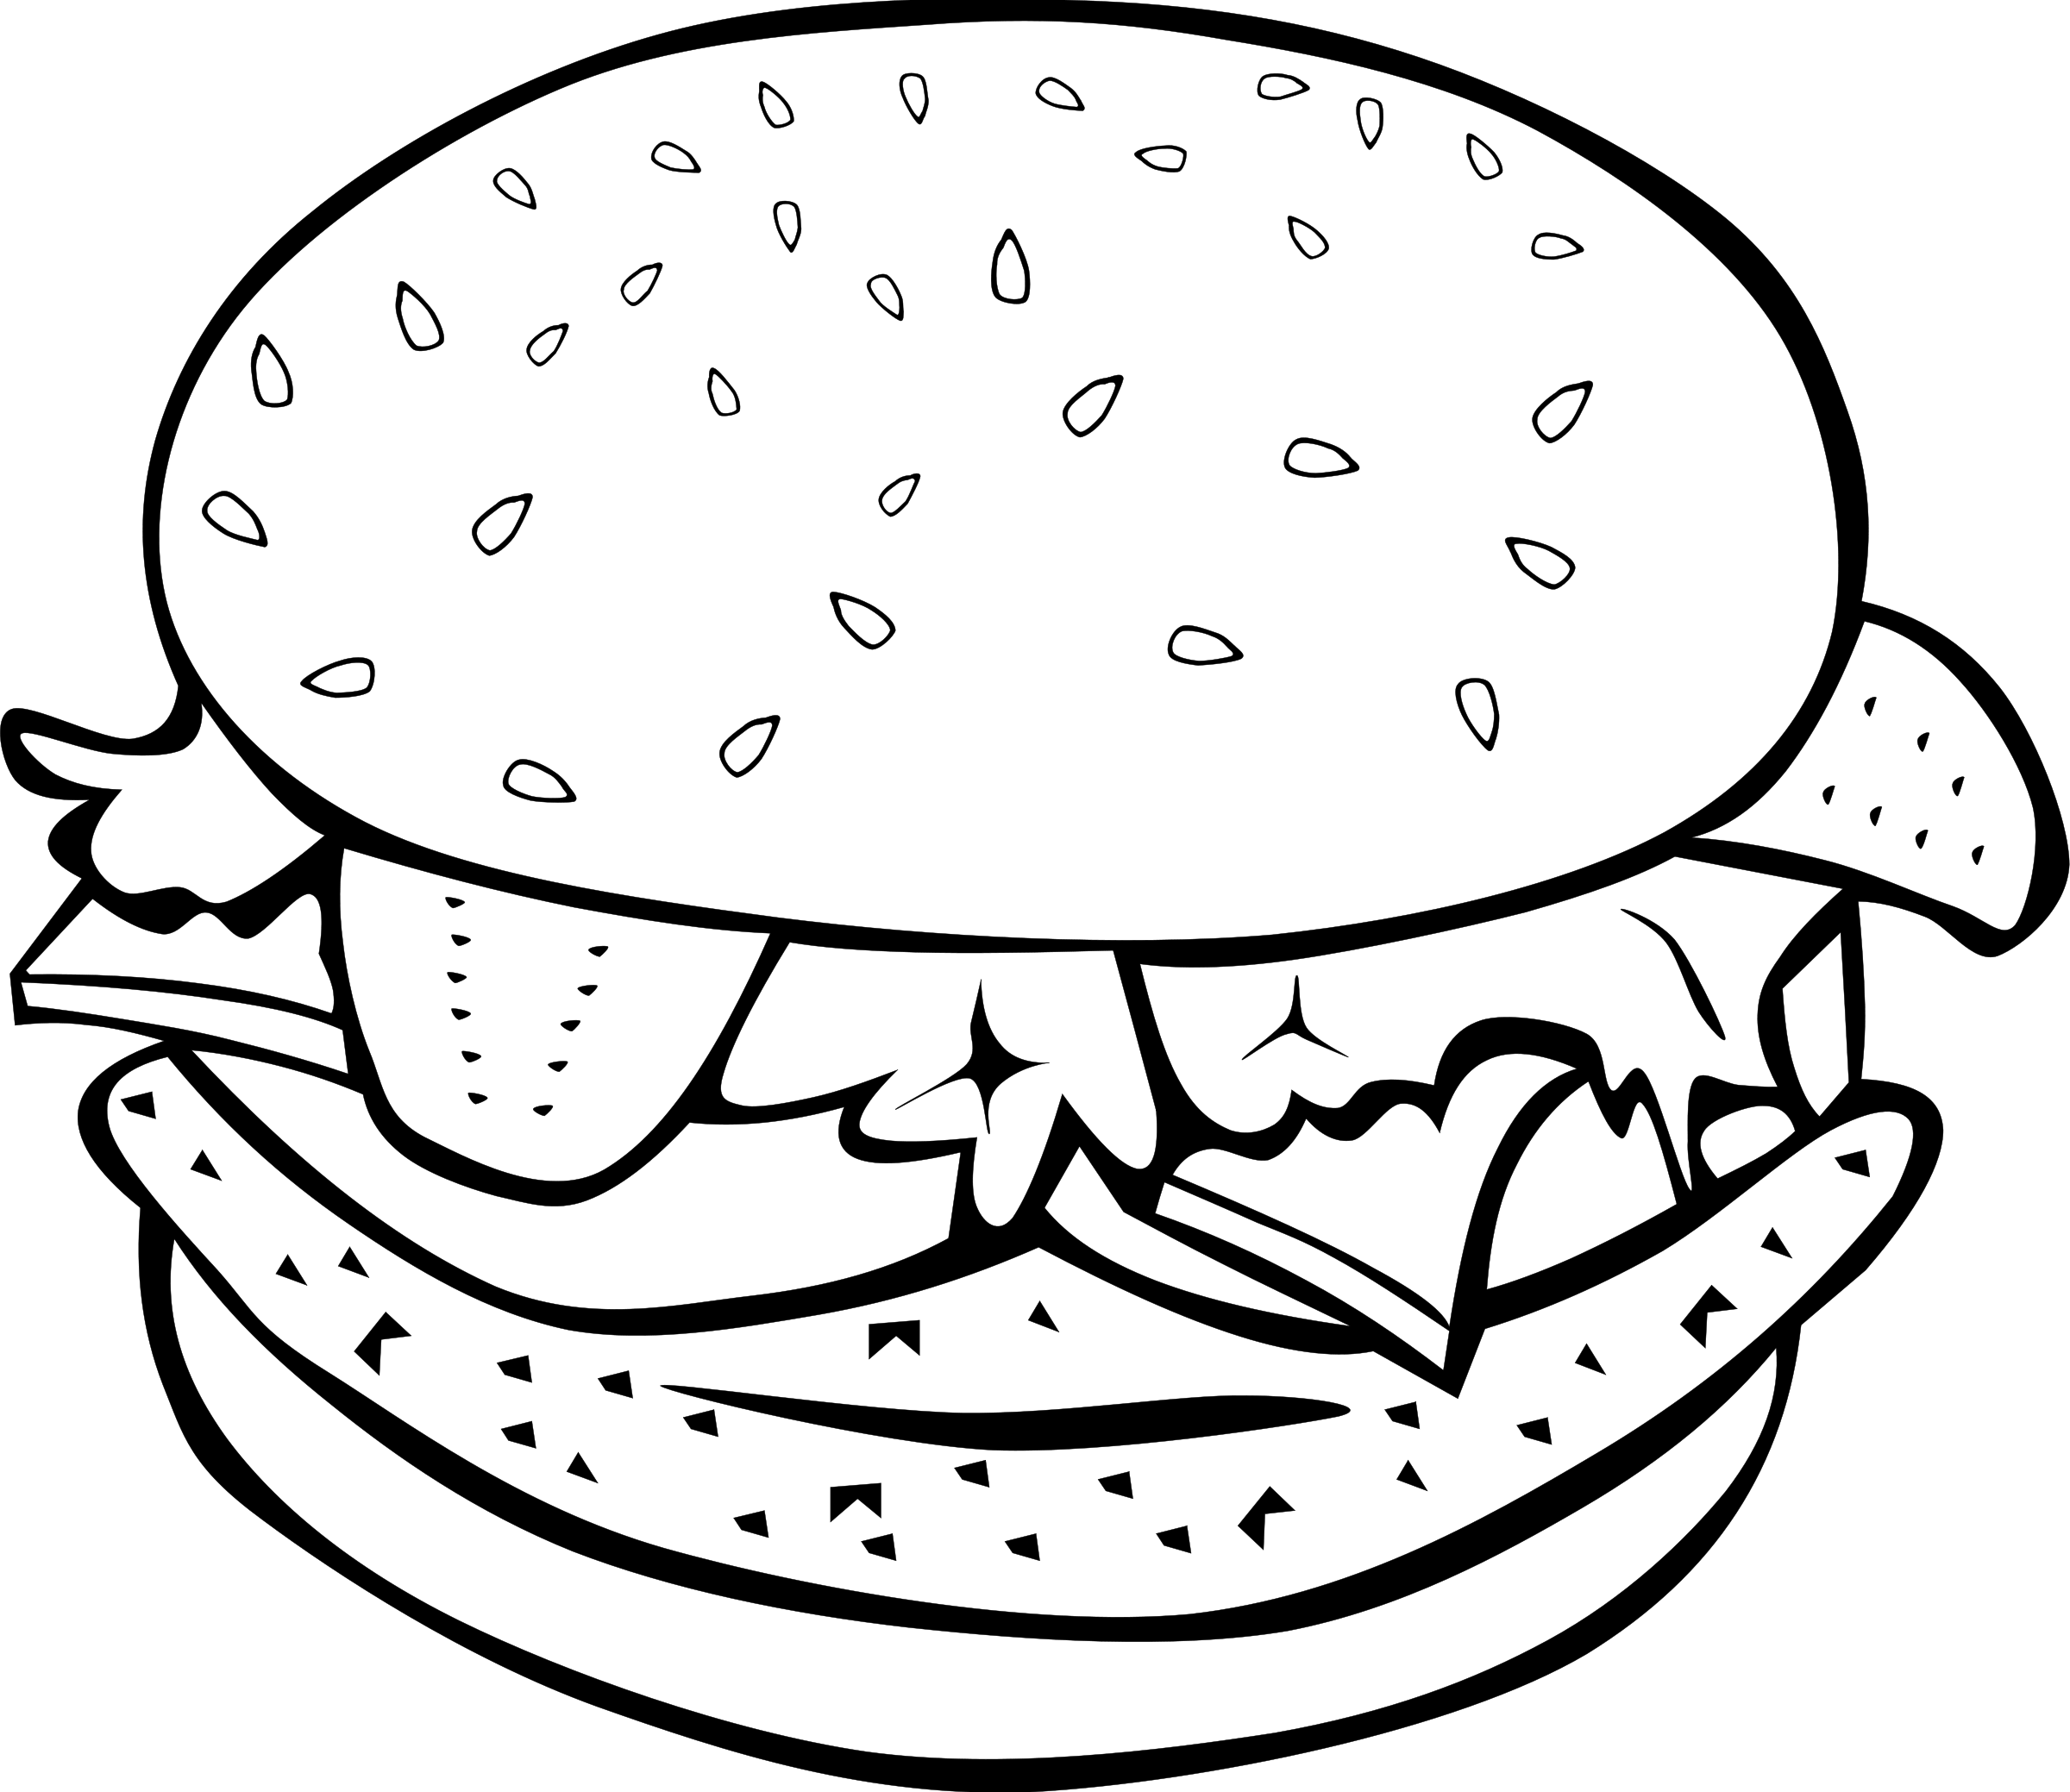 Pobarvanka hamburger | Food coloring pages, Food coloring ...